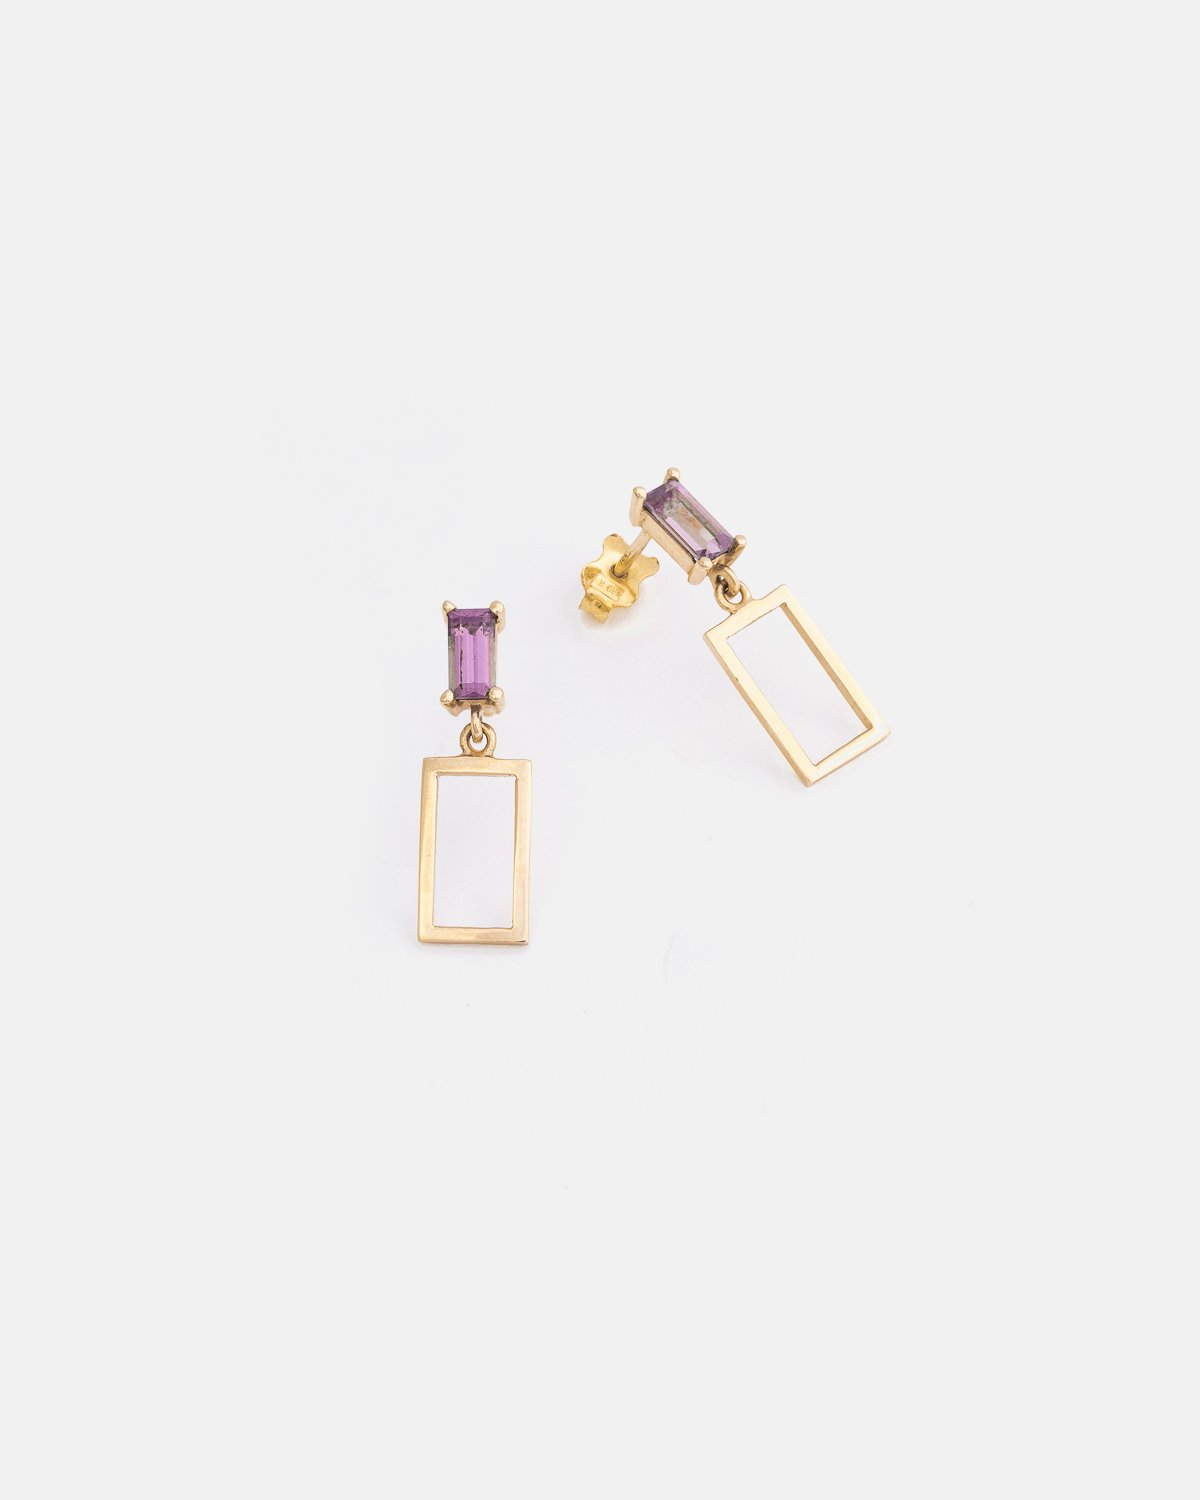 Liaisons Earrings in Yellow Gold with Purple Spinel